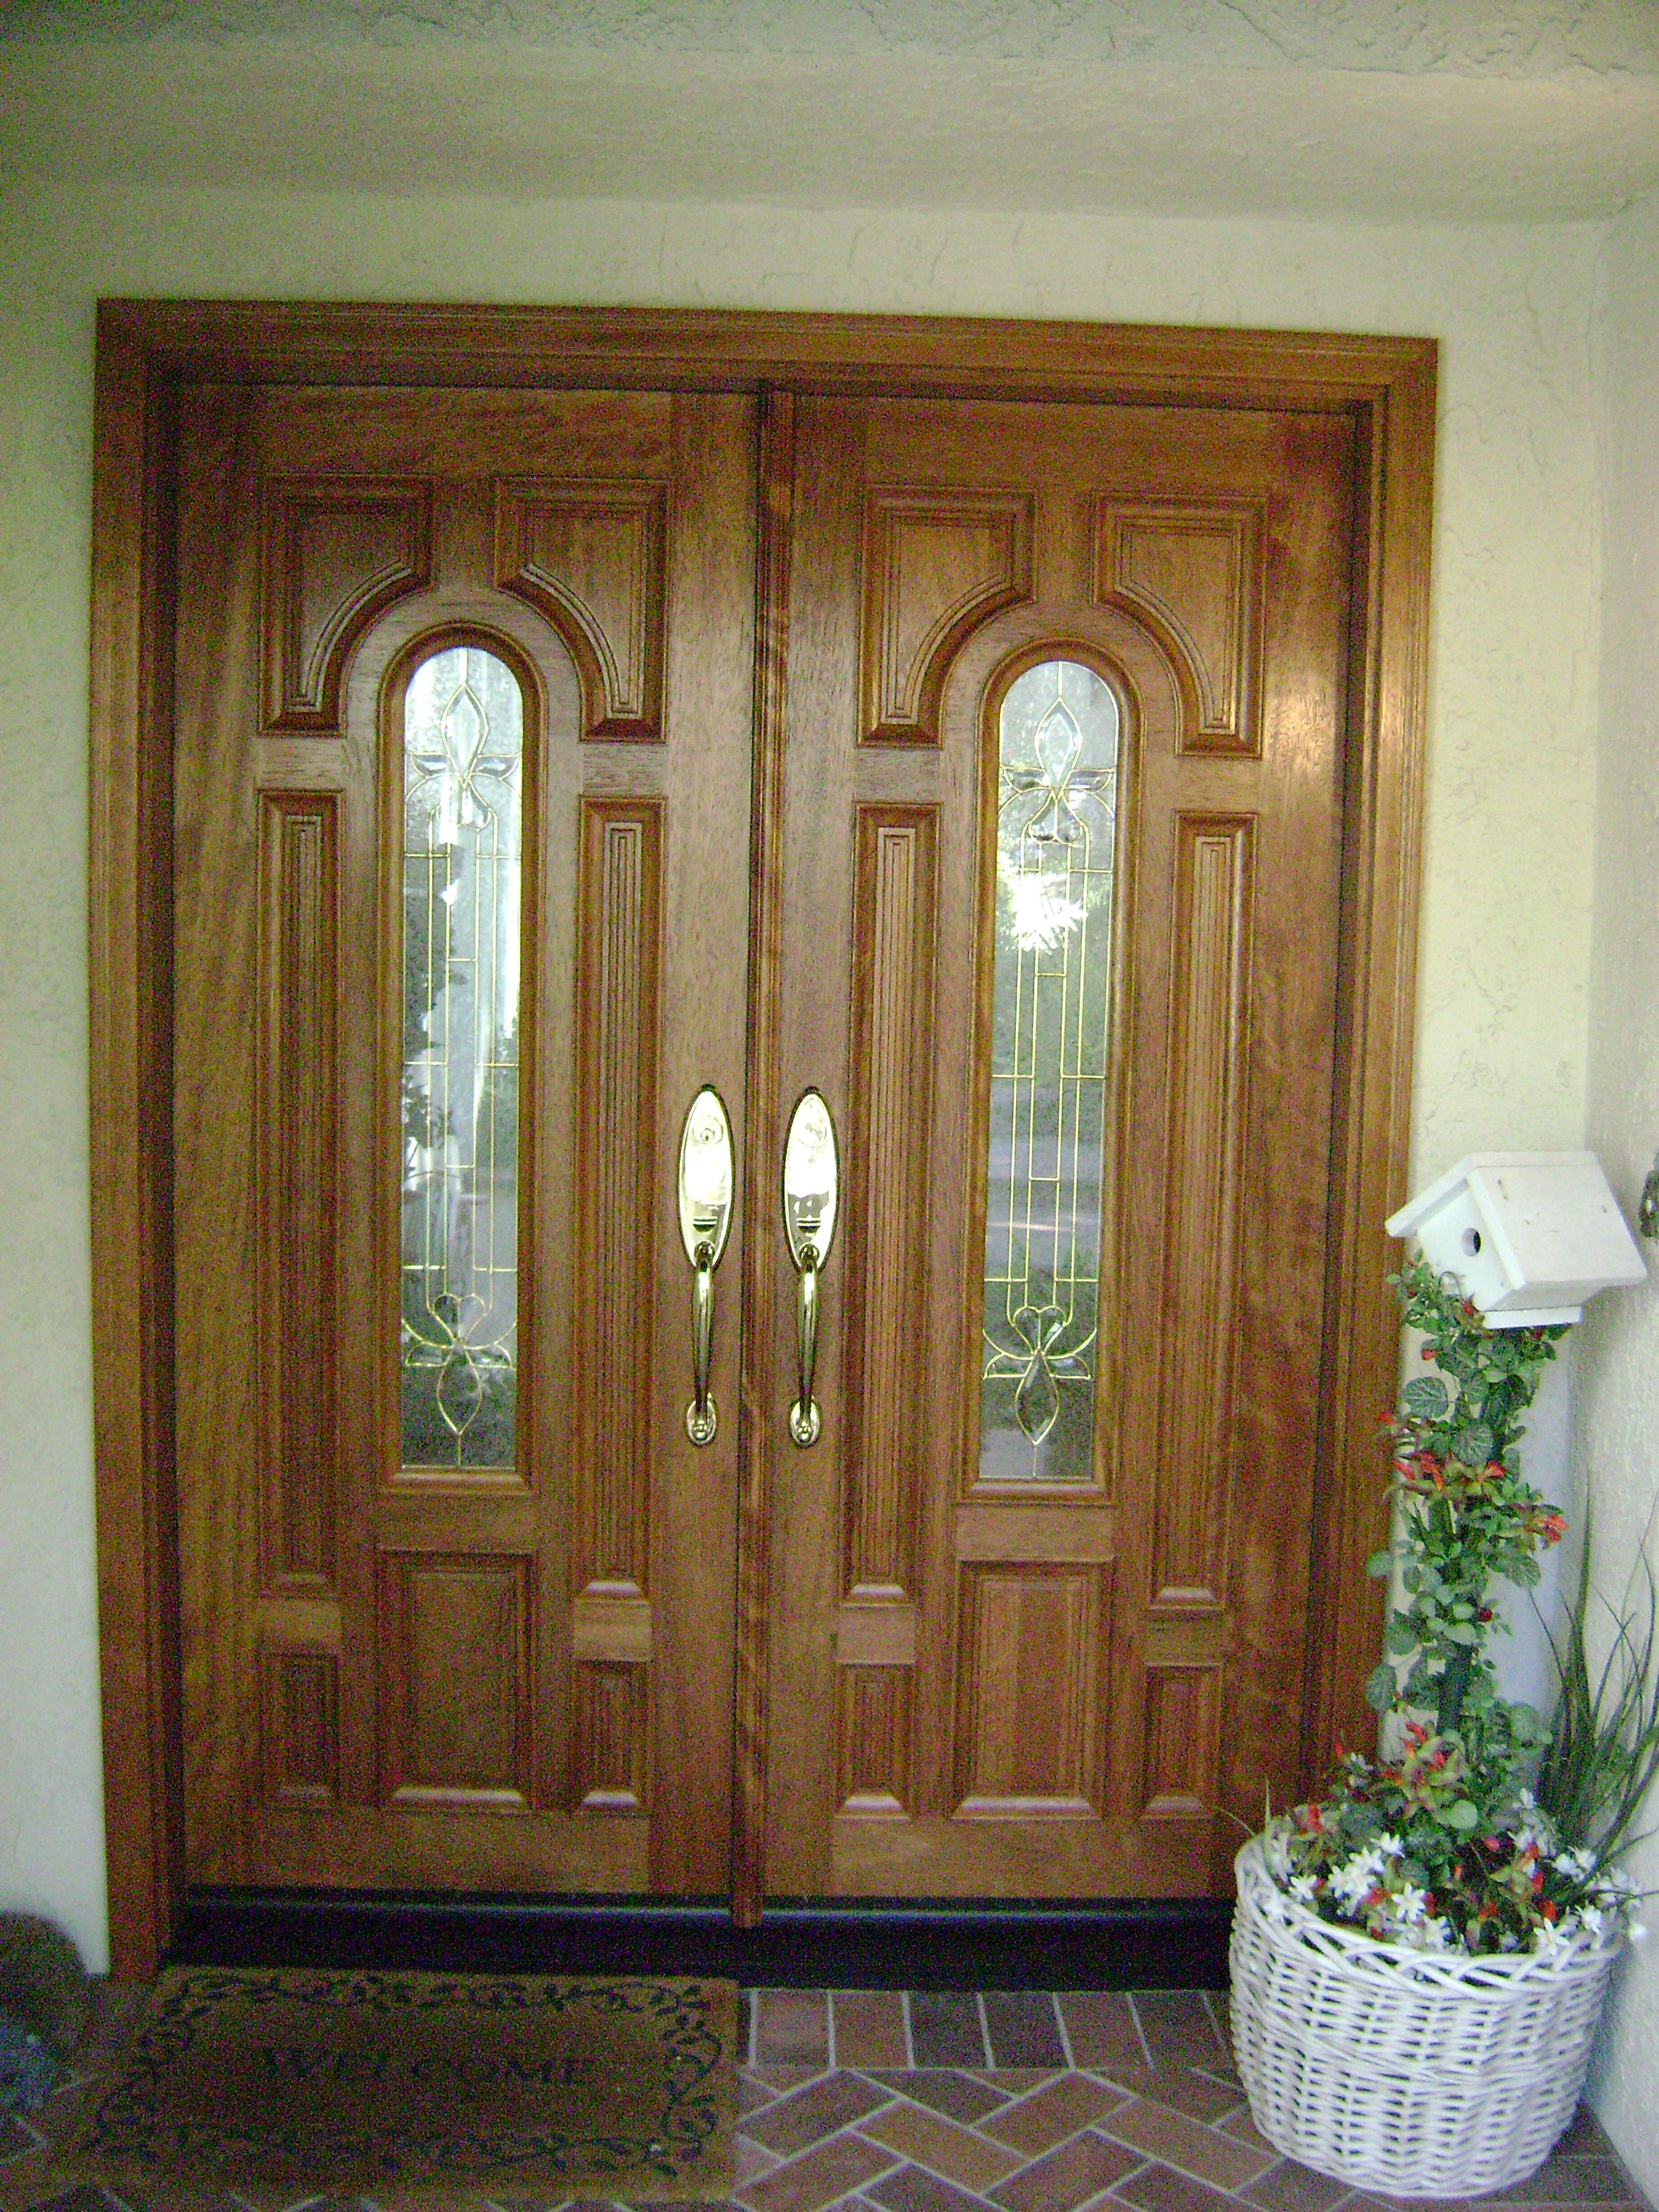 High Quality Images For Wicks French Doors 3d0walllove